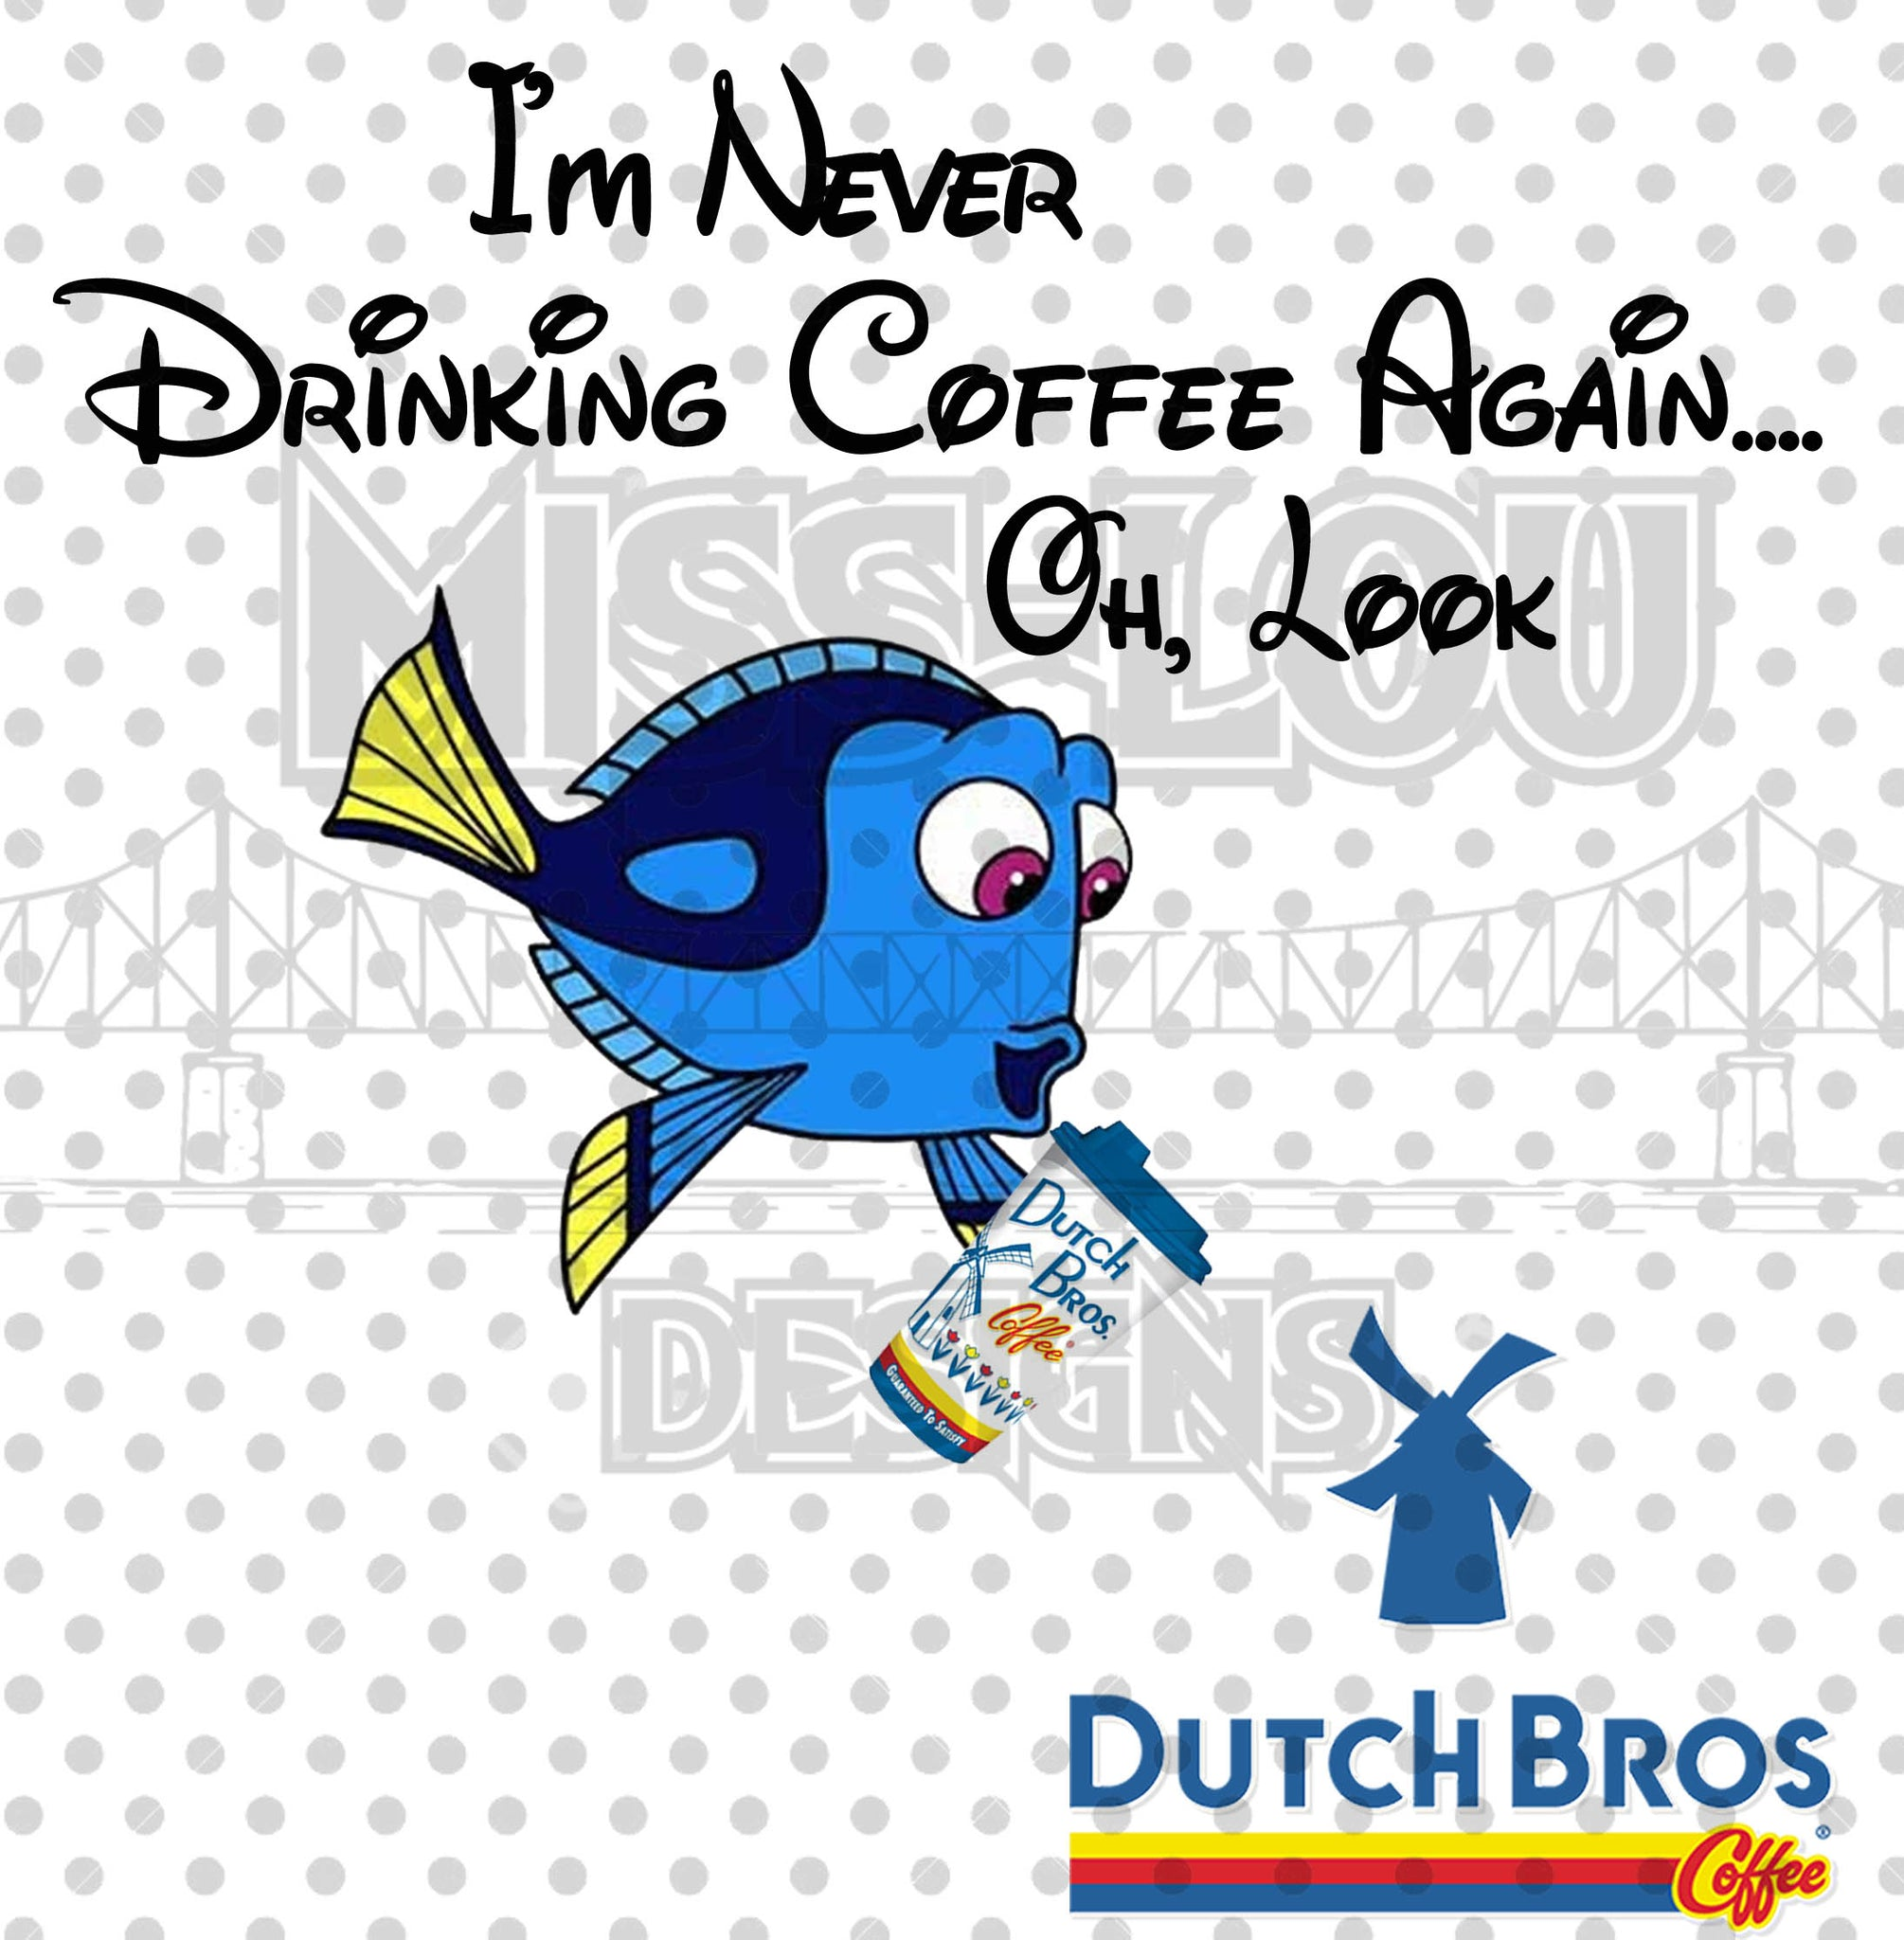 Never Drinking Again Coffee Again Dutch Brothers Waterslide